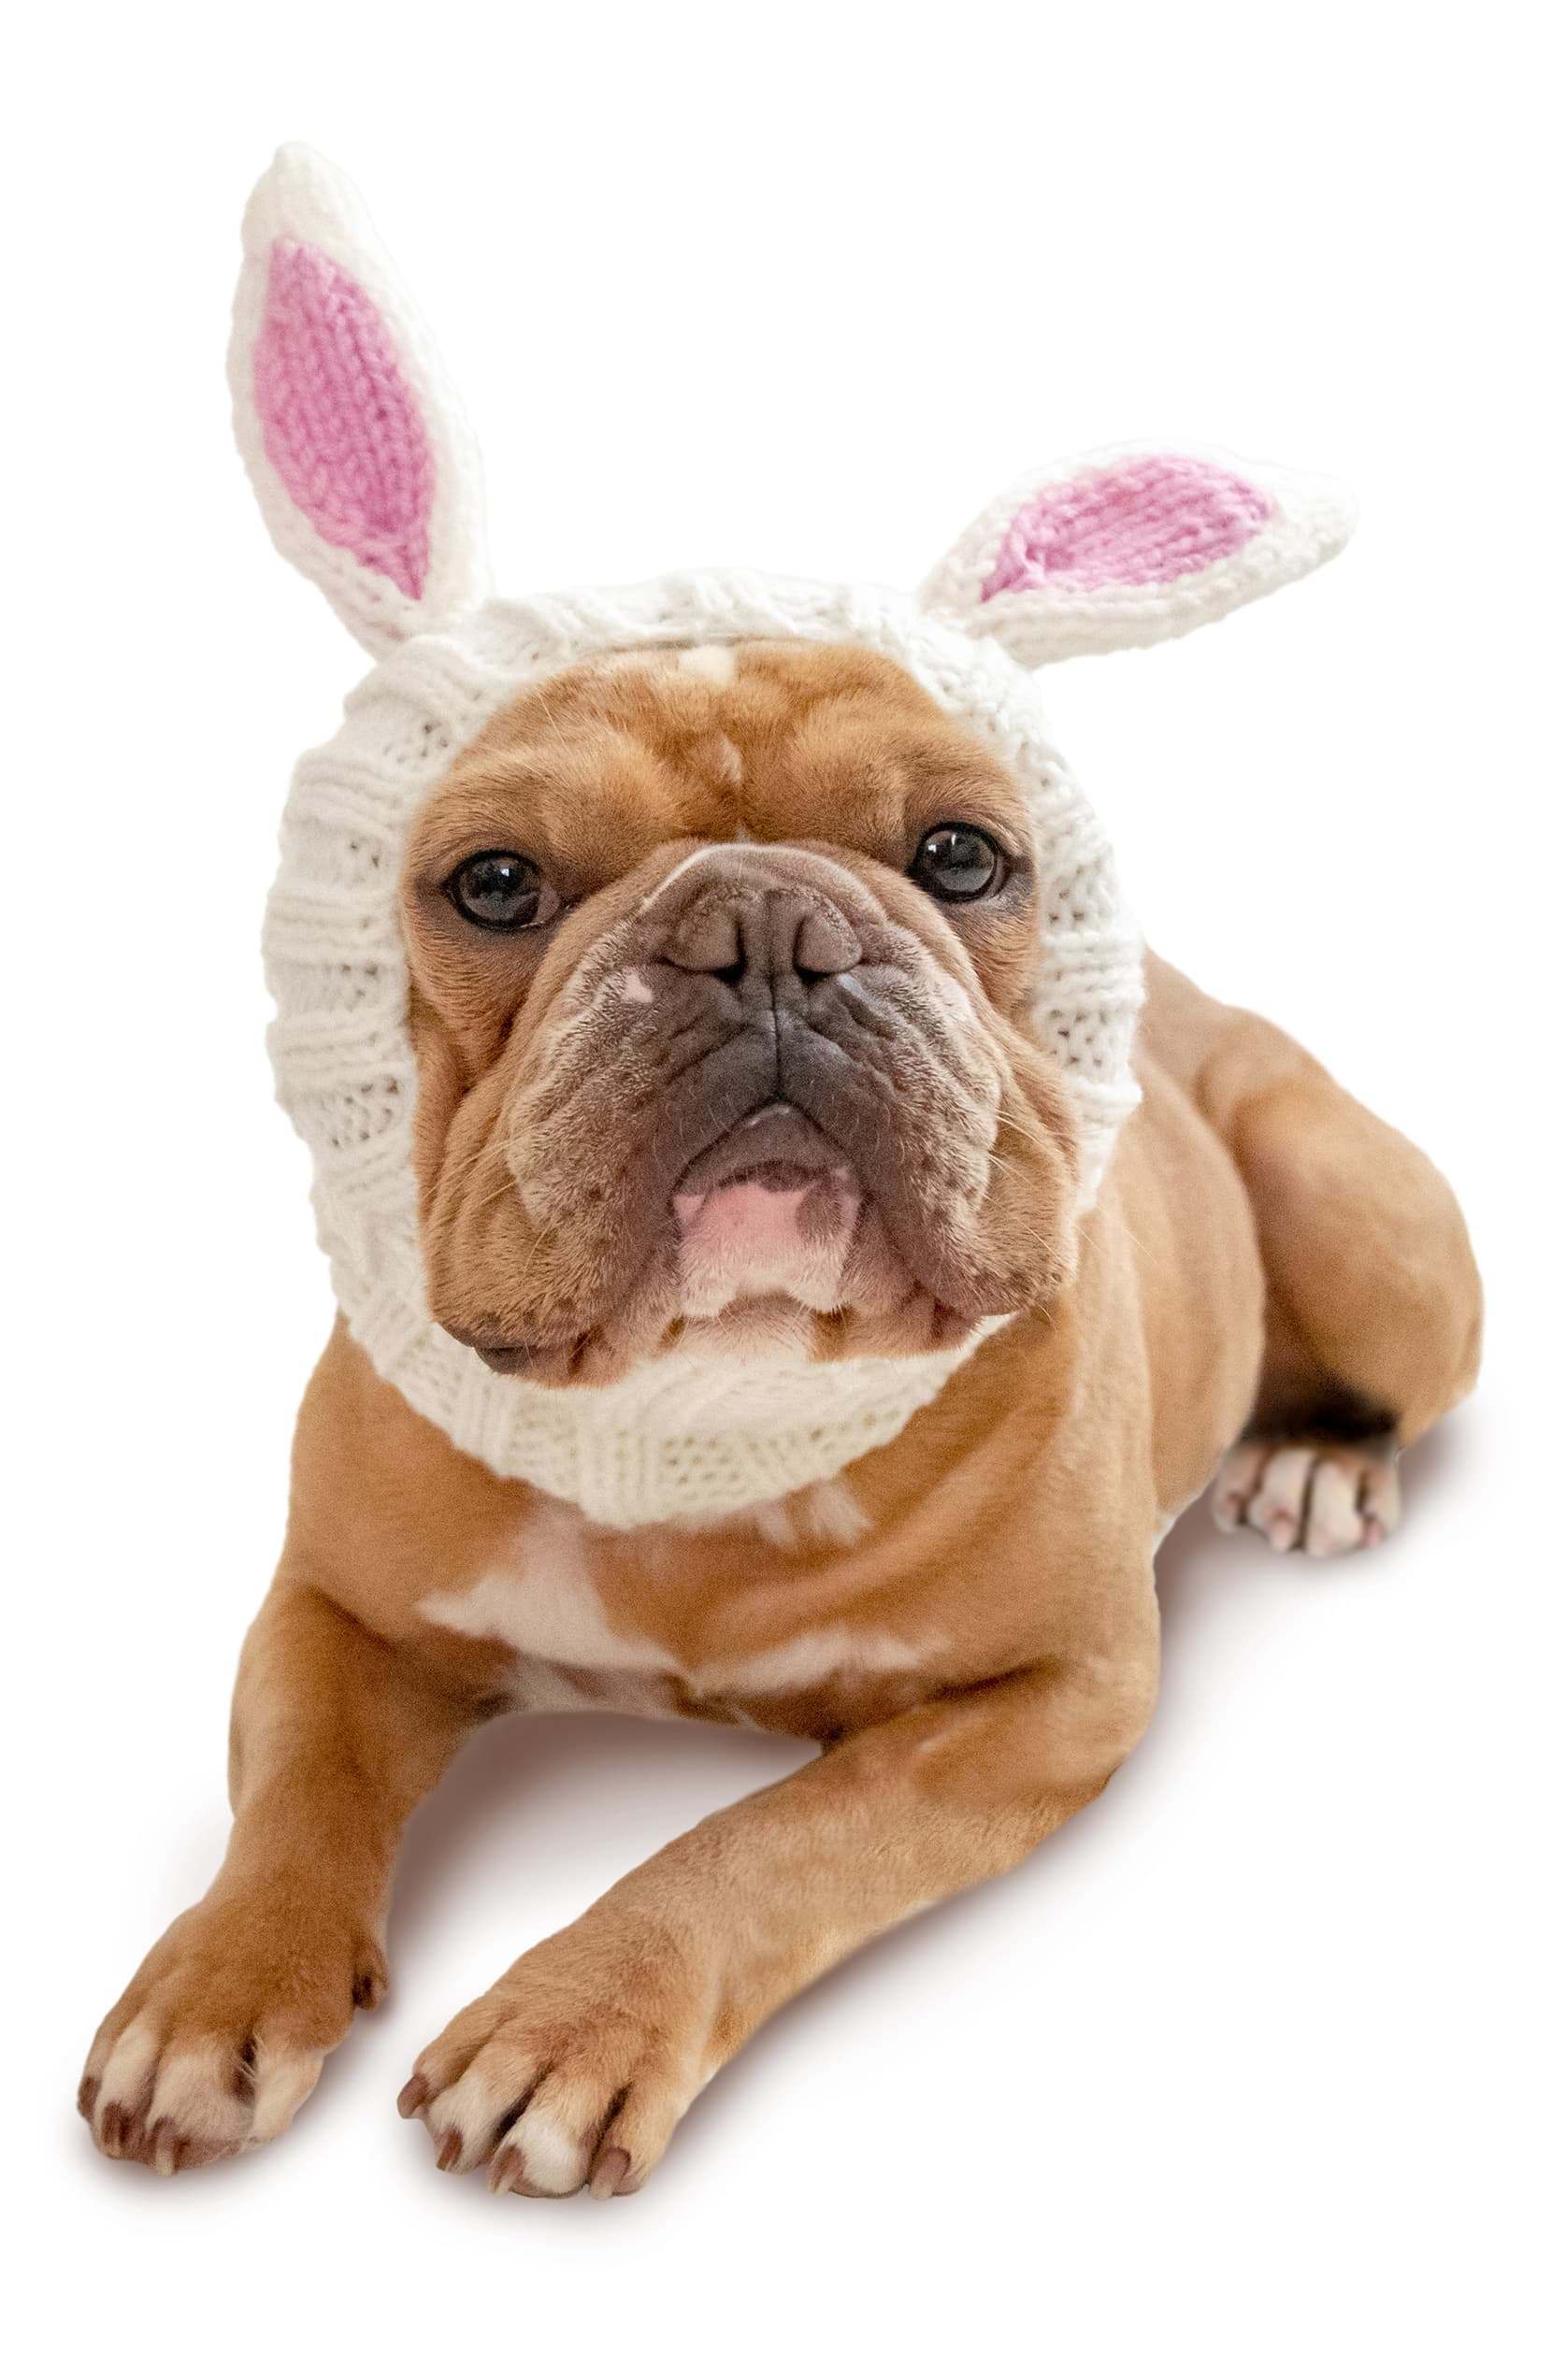 "<a  href=""https://shop.nordstrom.com/s/zoo-snoods-bunny-rabbit-crochet-dog-snood/5379036?origin=keywordsearch-personalizedsort&breadcrumb=Home%2FAll%20Results&color=white"" target=""_blank"" title=""https://shop.nordstrom.com/s/zoo-snoods-bunny-rabbit-crochet-dog-snood/5379036?origin=keywordsearch-personalizedsort&breadcrumb=Home%2FAll%20Results&color=white"">Bunny Rabbit Crochet Dog Snood from ZOO SNOODS ($15-$25)</a>{&nbsp;}Keep floppy pup ears snuggly warm on cold-weather walks—or just keep 'em from dangling into a food bowl at dinnertime—with this adorable crocheted snood handmade with perky bunny ears.{&nbsp;}<a  href=""https://sinclairstoryline.com/Bunny%20Rabbit%20Crochet%20Dog%20Snood%20from%20ZOO%20SNOODS%20($15-$25)%20Keep%20floppy%20pup%20ears%20snuggly%20warm%20on%20cold-weather%20walks%E2%80%94or%20just%20keep%20'em%20from%20dangling%20into%20a%20food%20bowl%20at%20dinnertime%E2%80%94with%20this%20adorable%20crocheted%20snood%20handmade%20with%20perky%20bunny%20ears.%20(Image:%20Nordstrom)"" target=""_blank"" title=""Bunny Rabbit Crochet Dog Snood from ZOO SNOODS ($15-$25) Keep floppy pup ears snuggly warm on cold-weather walks—or just keep 'em from dangling into a food bowl at dinnertime—with this adorable crocheted snood handmade with perky bunny ears. (Image: Nordstrom)"">(Image: Nordstrom){&nbsp;}</a>"